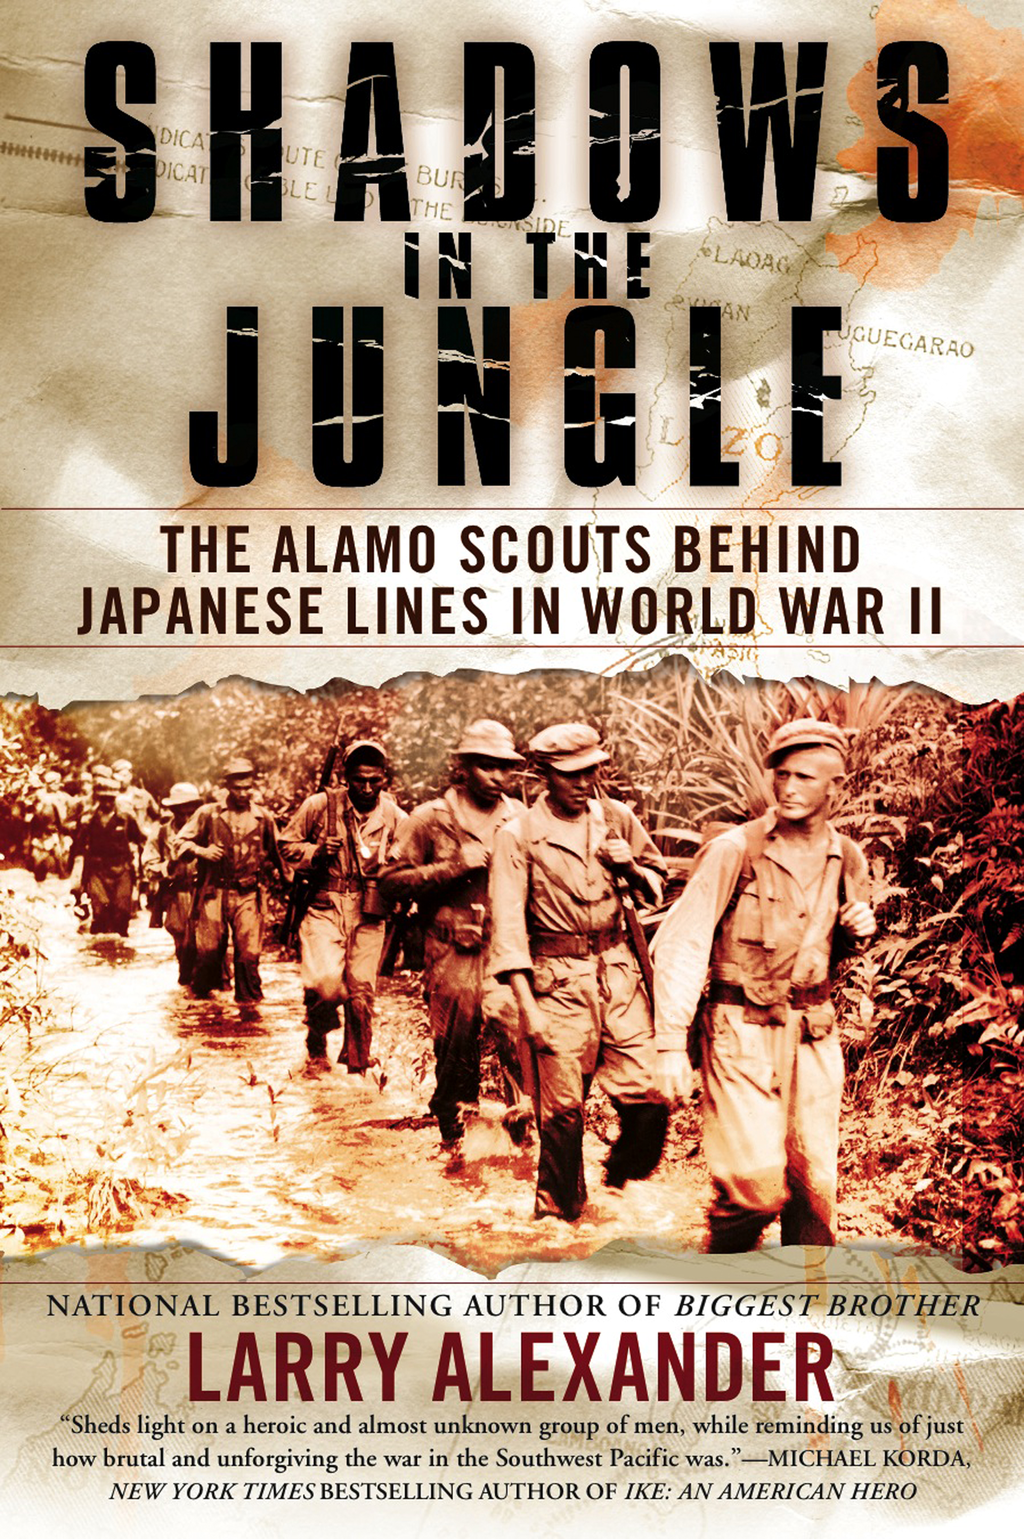 Shadows in the Jungle: The Alamo Scouts Behind Japanese Lines in World War II